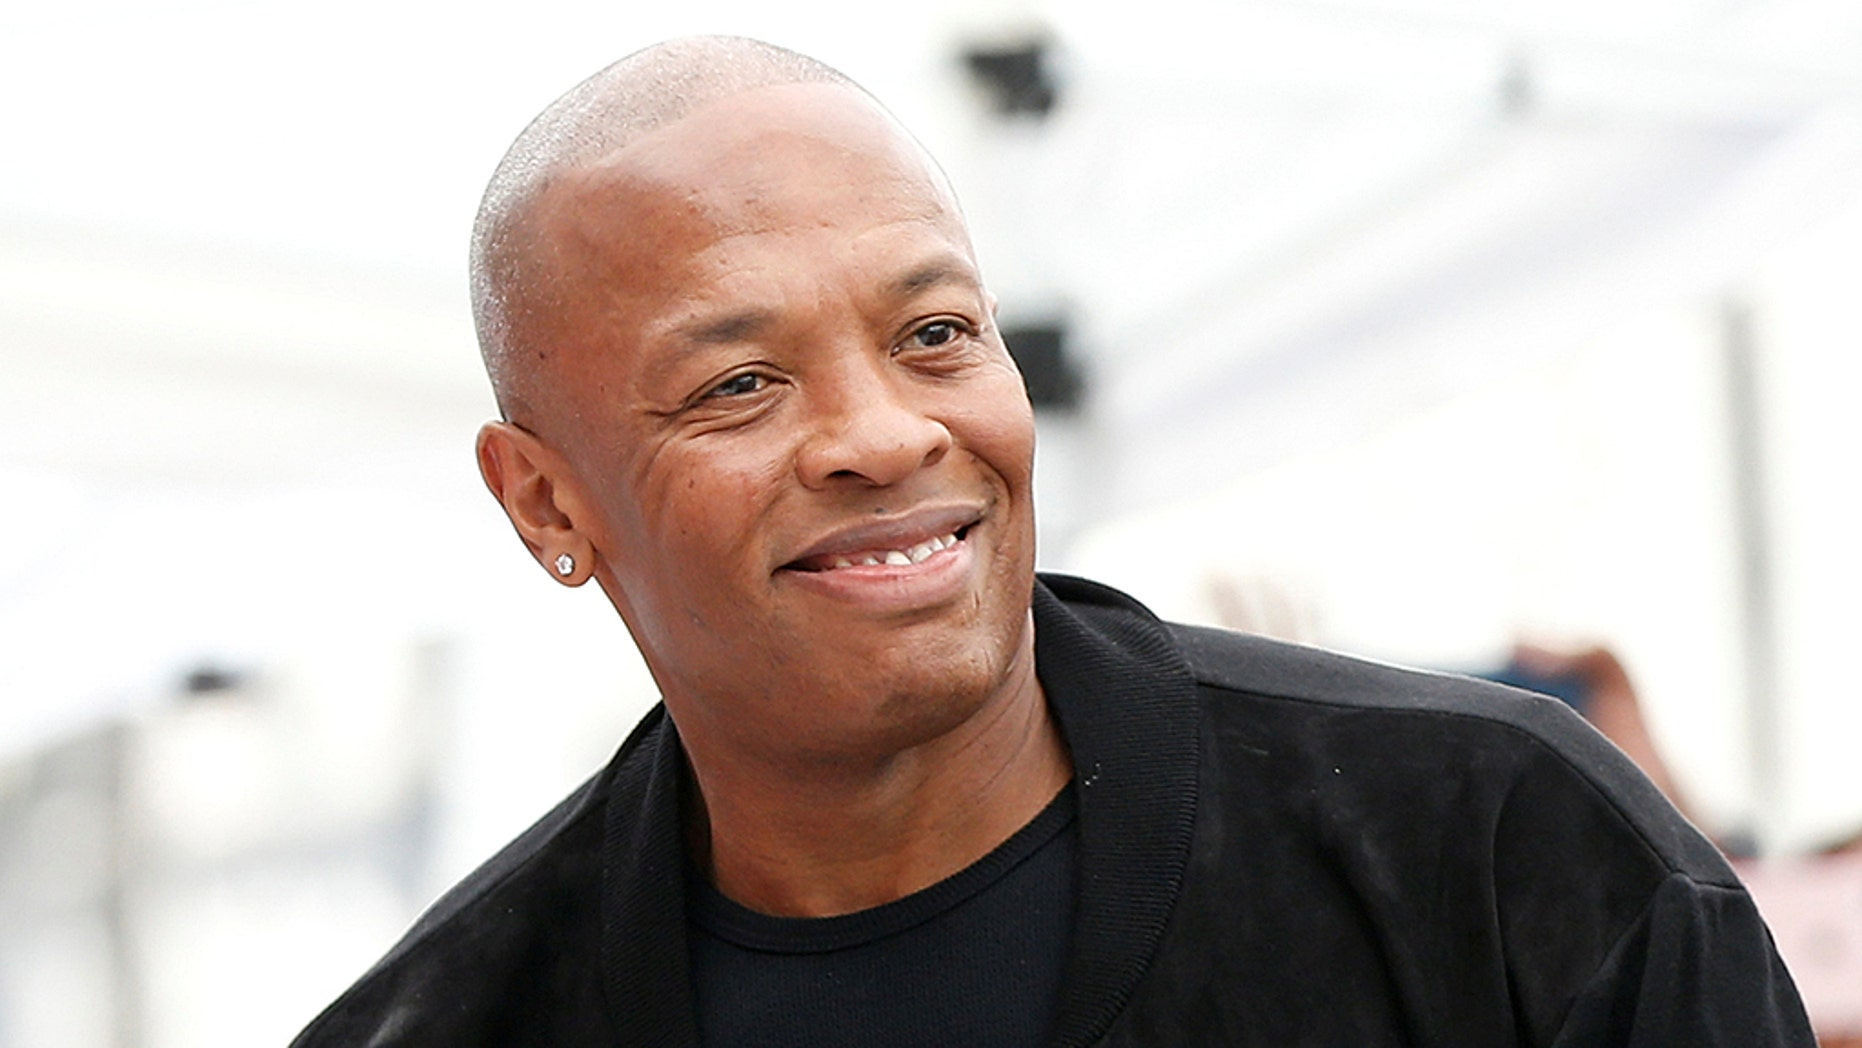 Dr. Dre donated $ 70 million to the University of Southern California in 2013. Now his daughter was accepted as an applicant. (Reuters)